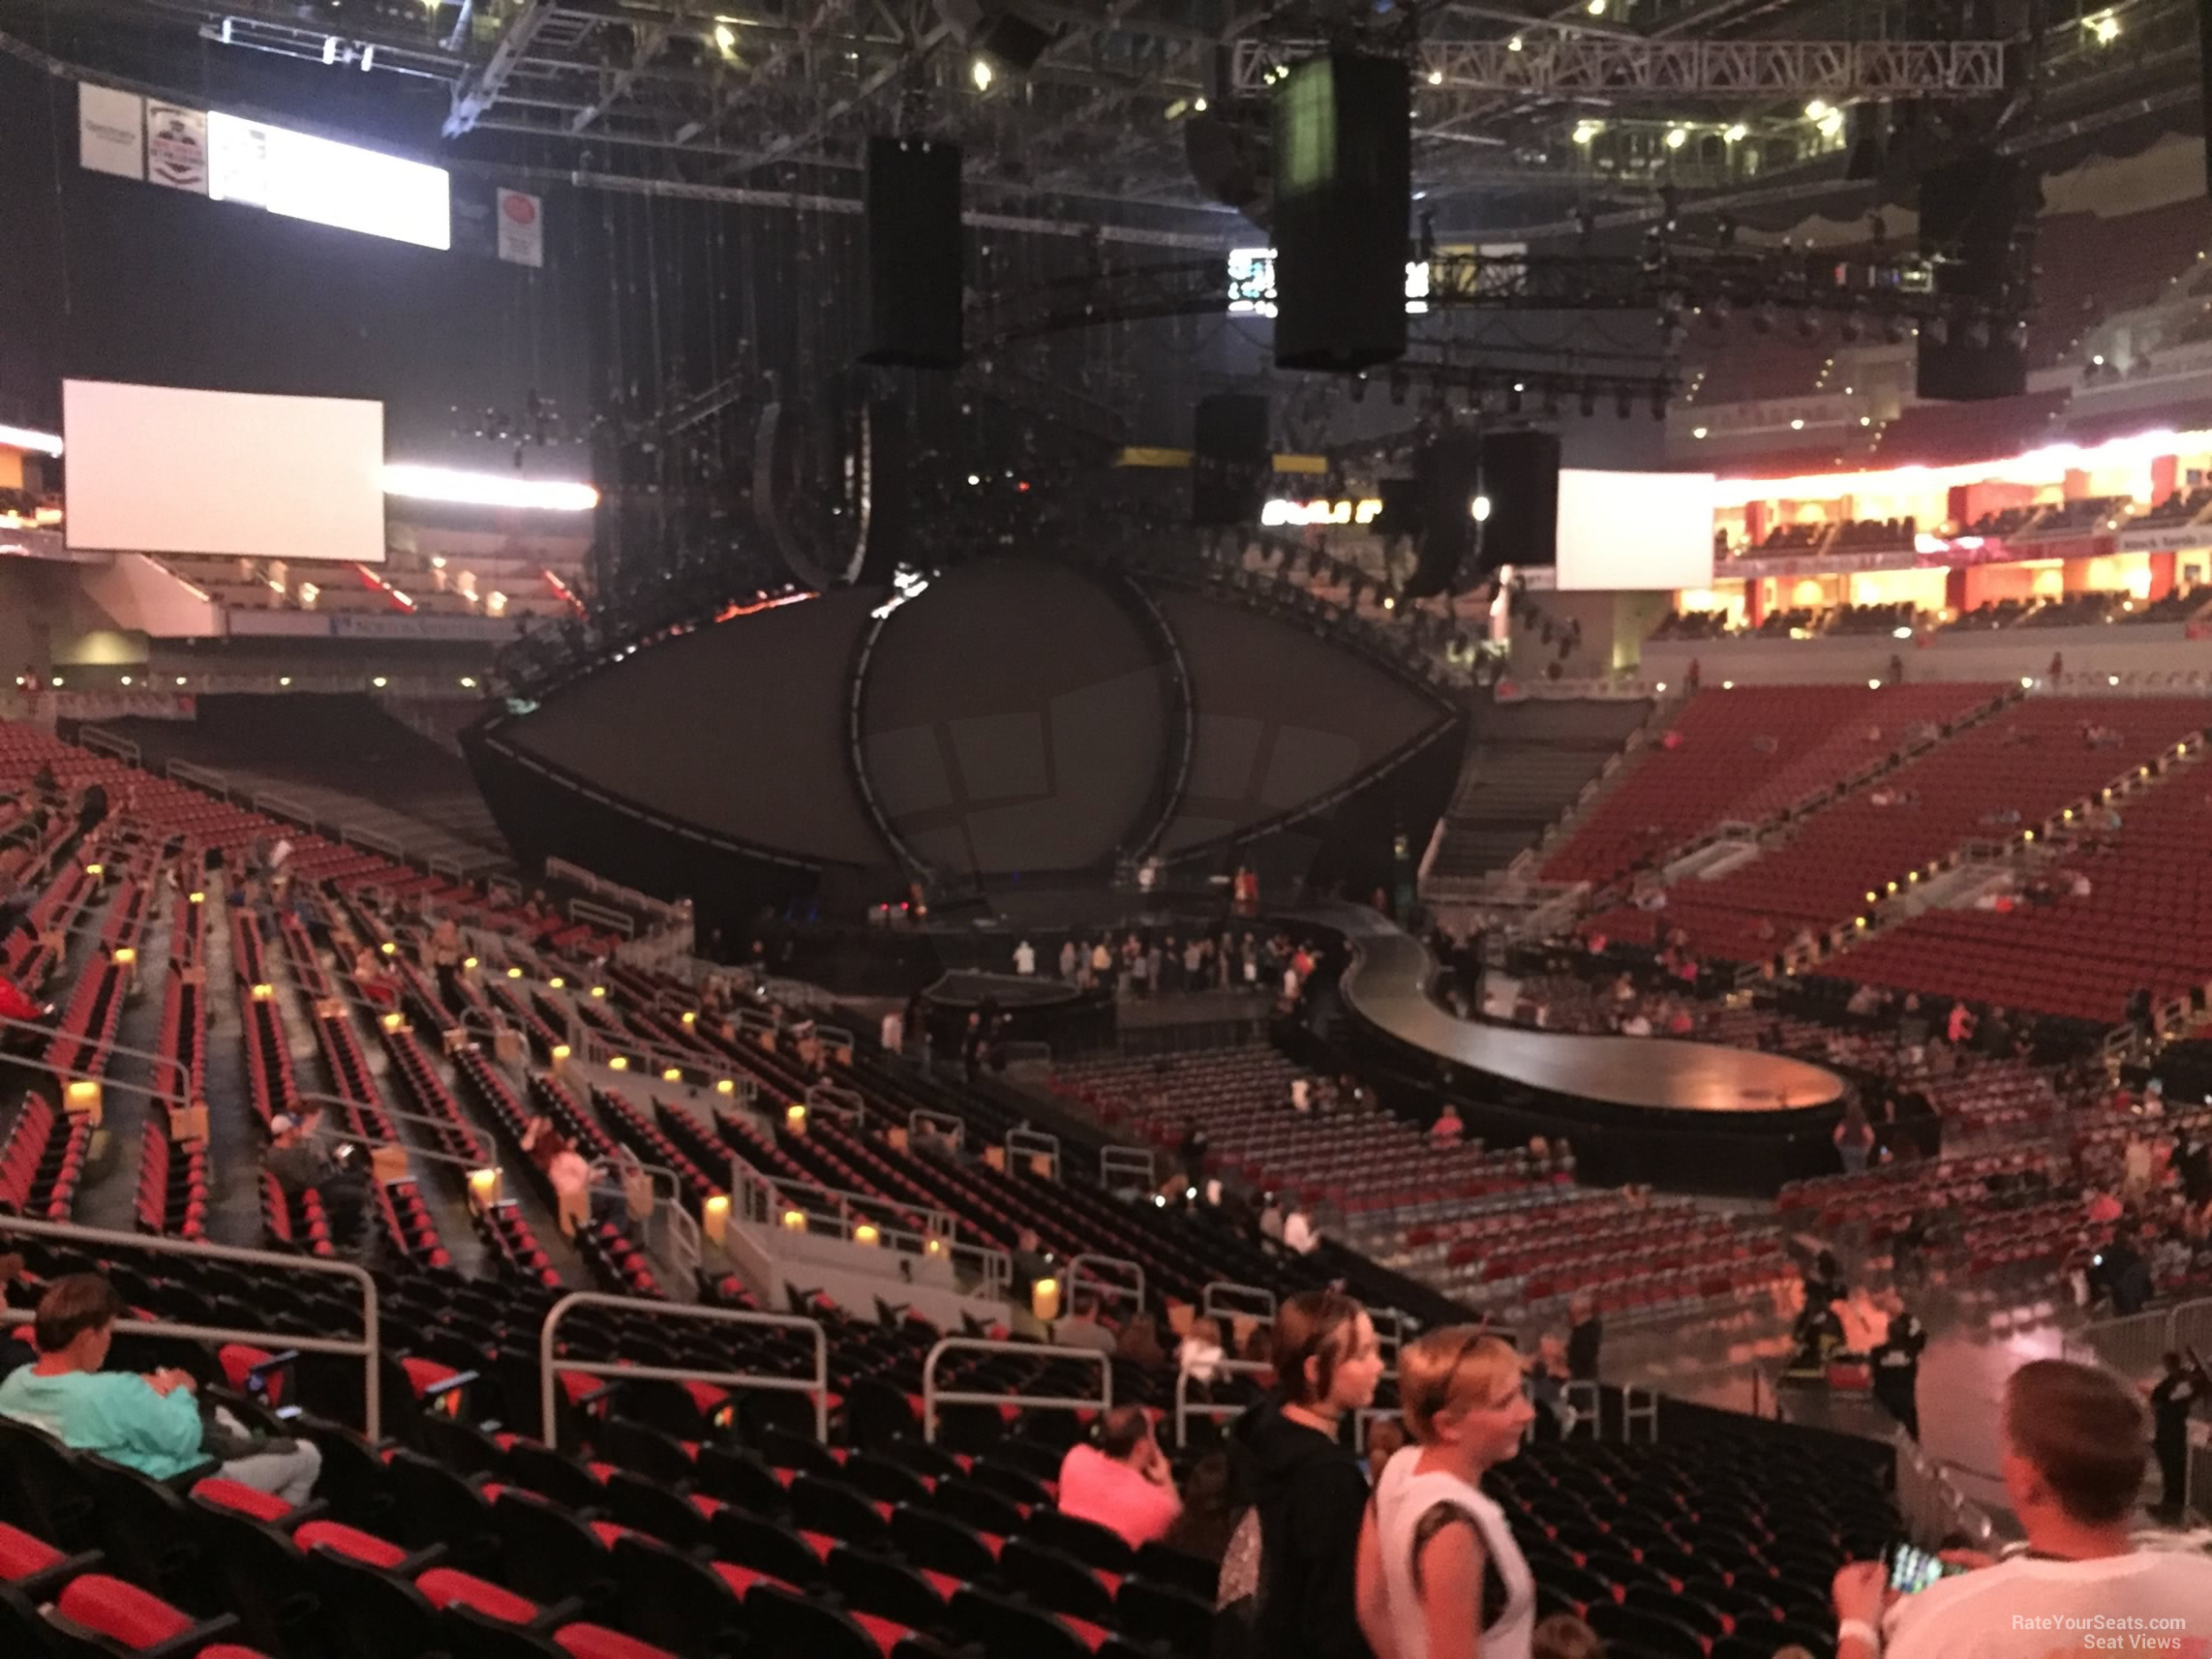 Kfc Yum Center Section 113 Concert Seating